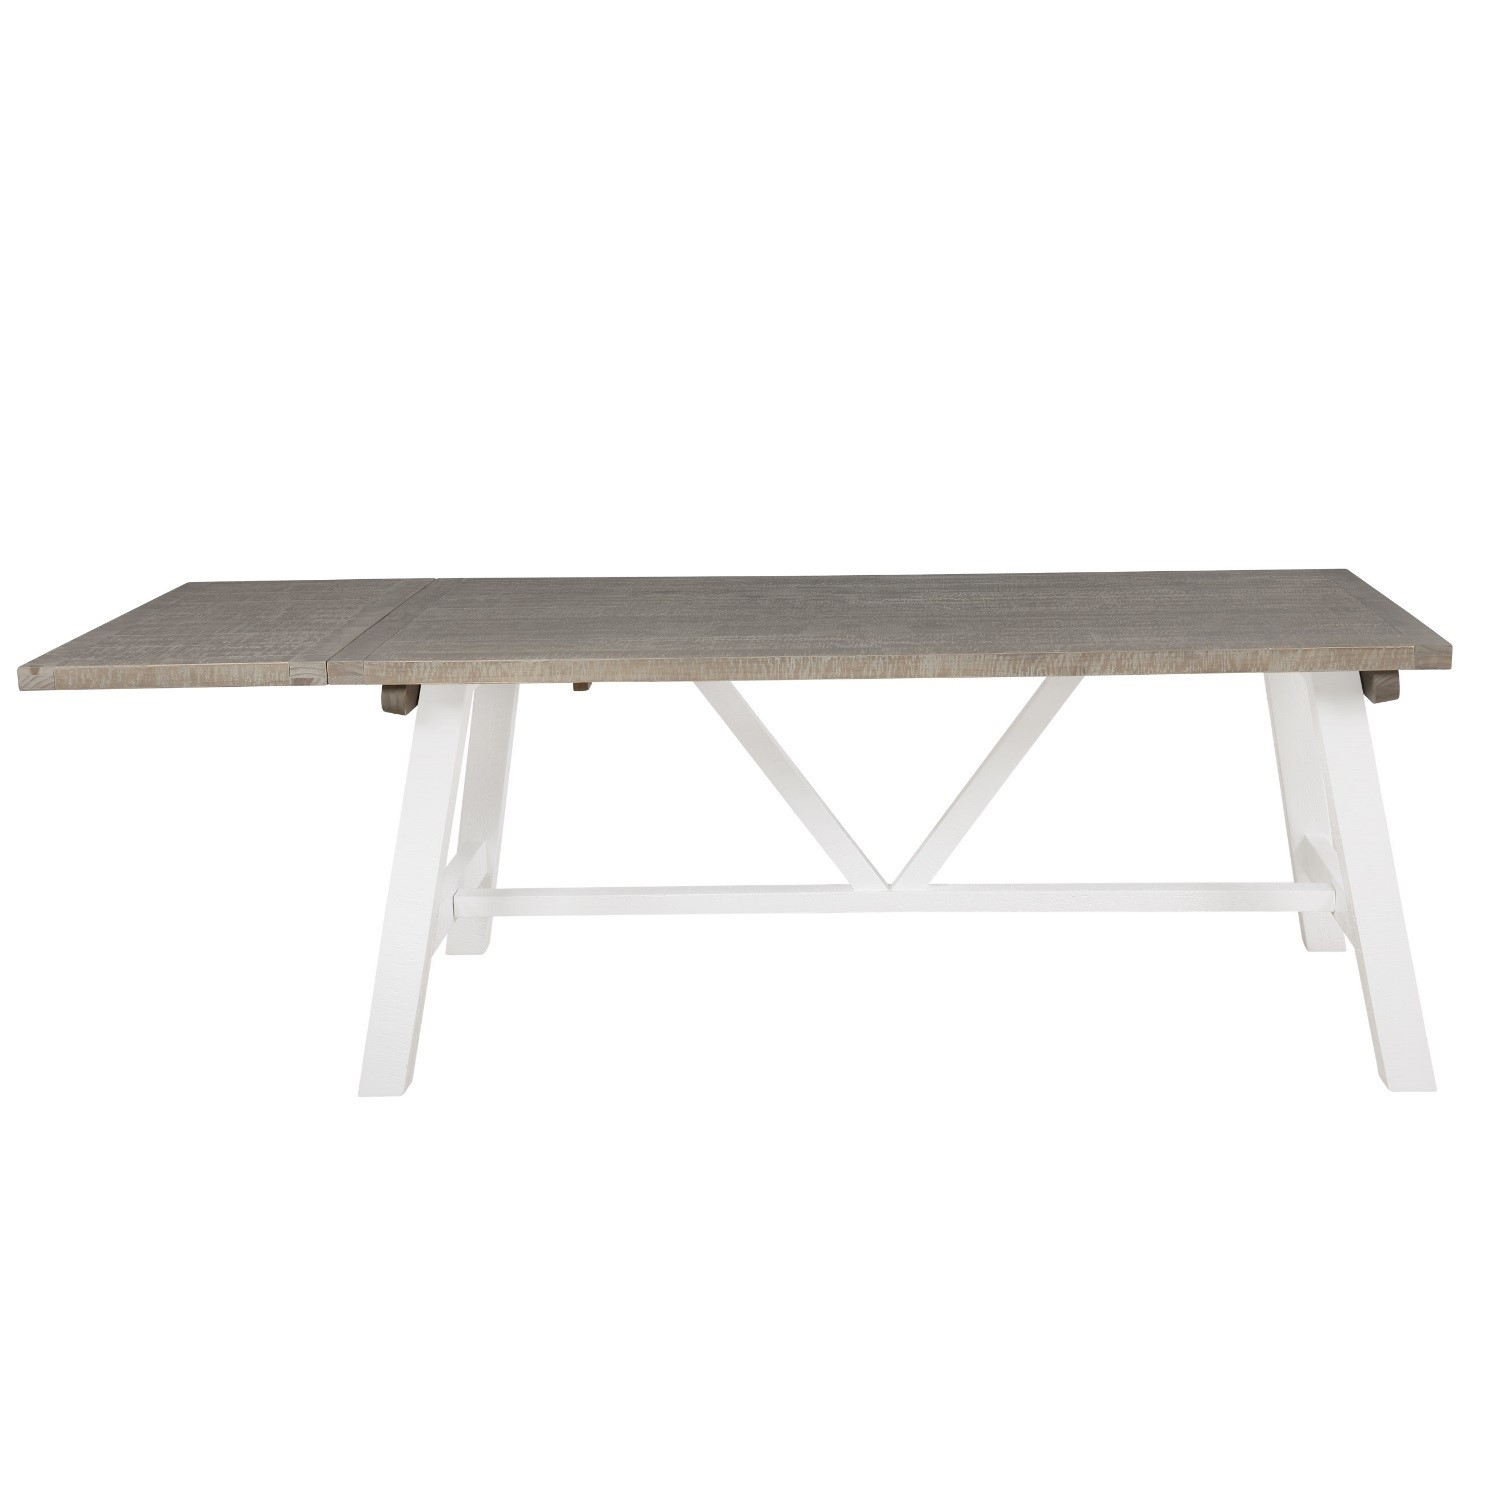 Picture of: Wood Extendable Dining Table In White Wood Wash Fawsley Furniture123